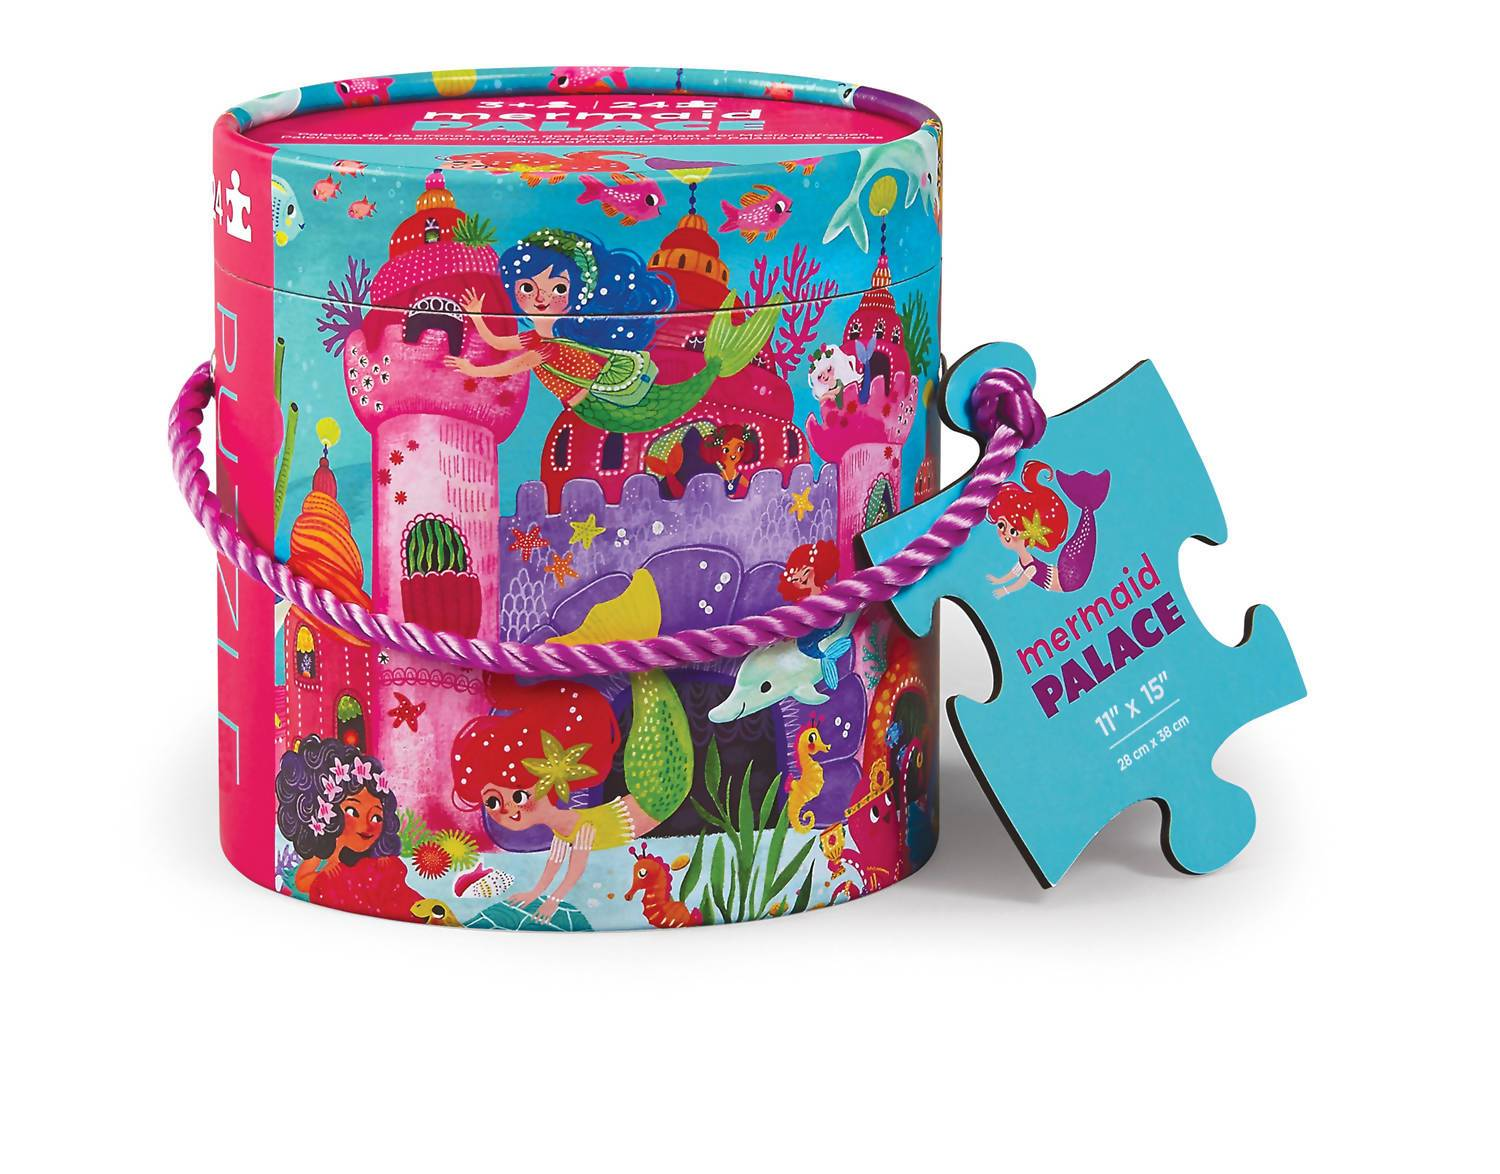 24pc Mini Canister Puzzle - Mermaid Palace - Kids Puzzles - The Children's Showcase - Naiise